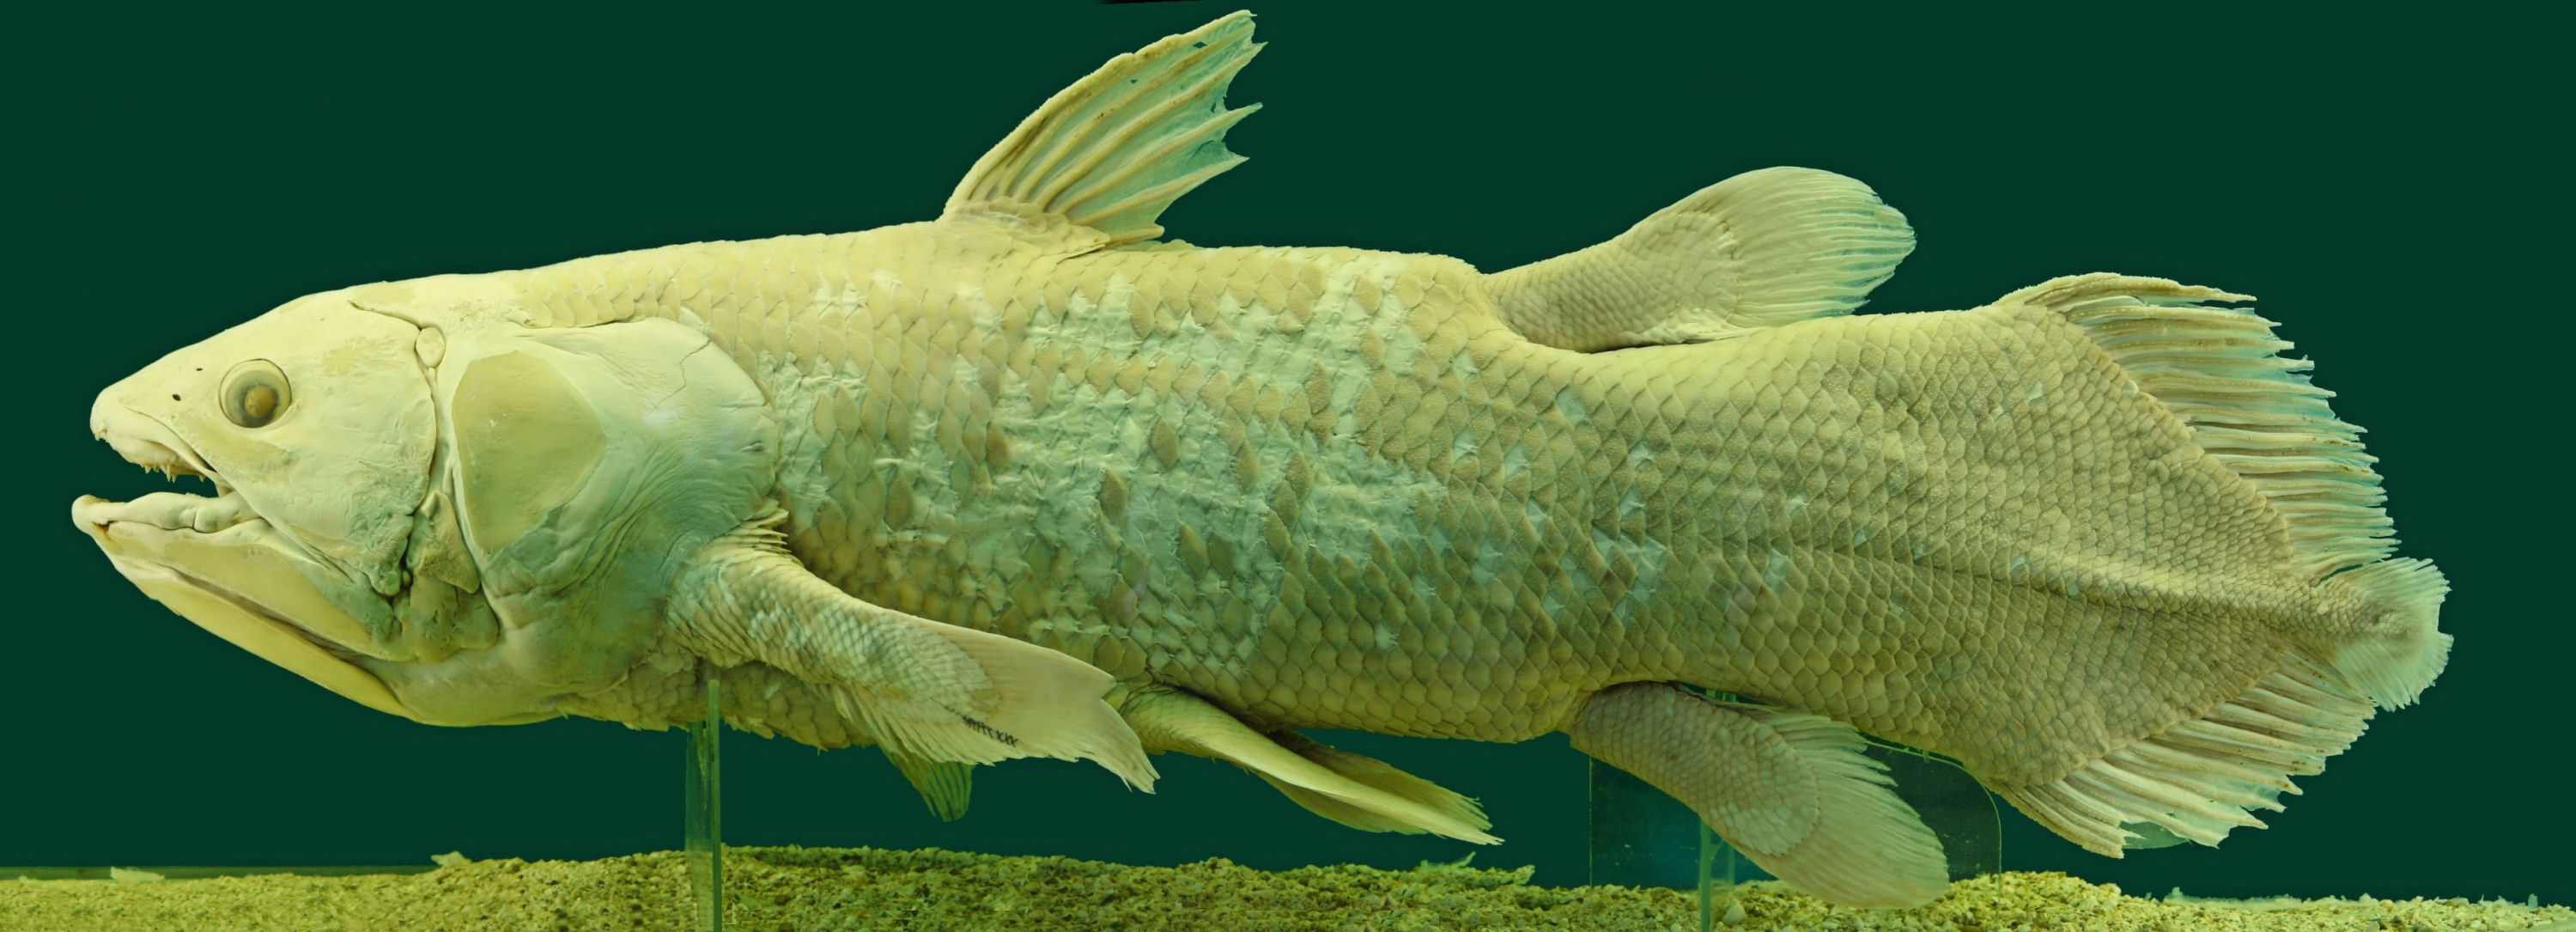 Coelacanth Museum Of Natural History